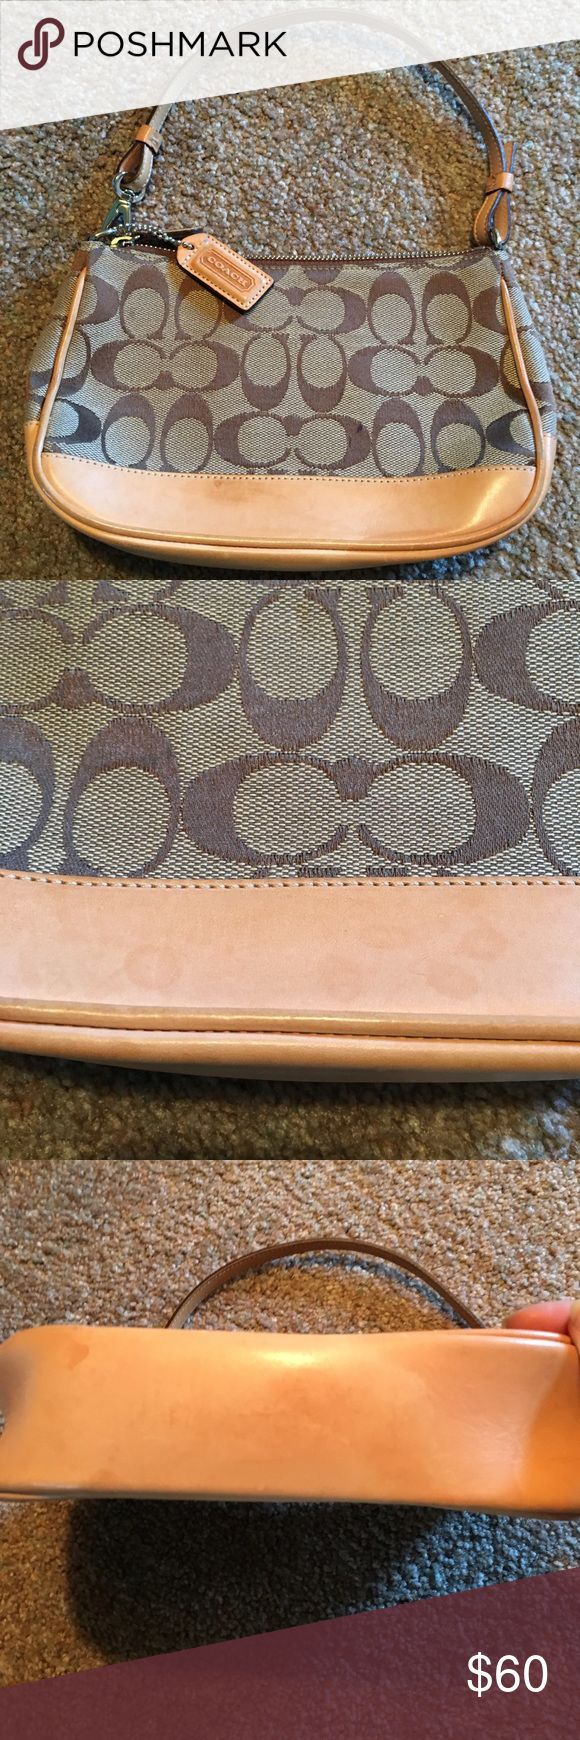 Coach Monogram Mini Shoulder Bag Coach Monogram Mini Shoulder Bag. Colors are Tan and Dark Brown. Some watermarking/minor staining on leather. Corners show some wear. Inside is perfect (no stains or tears). Otherwise, great pre-loved condition. Coach Bags Shoulder Bags